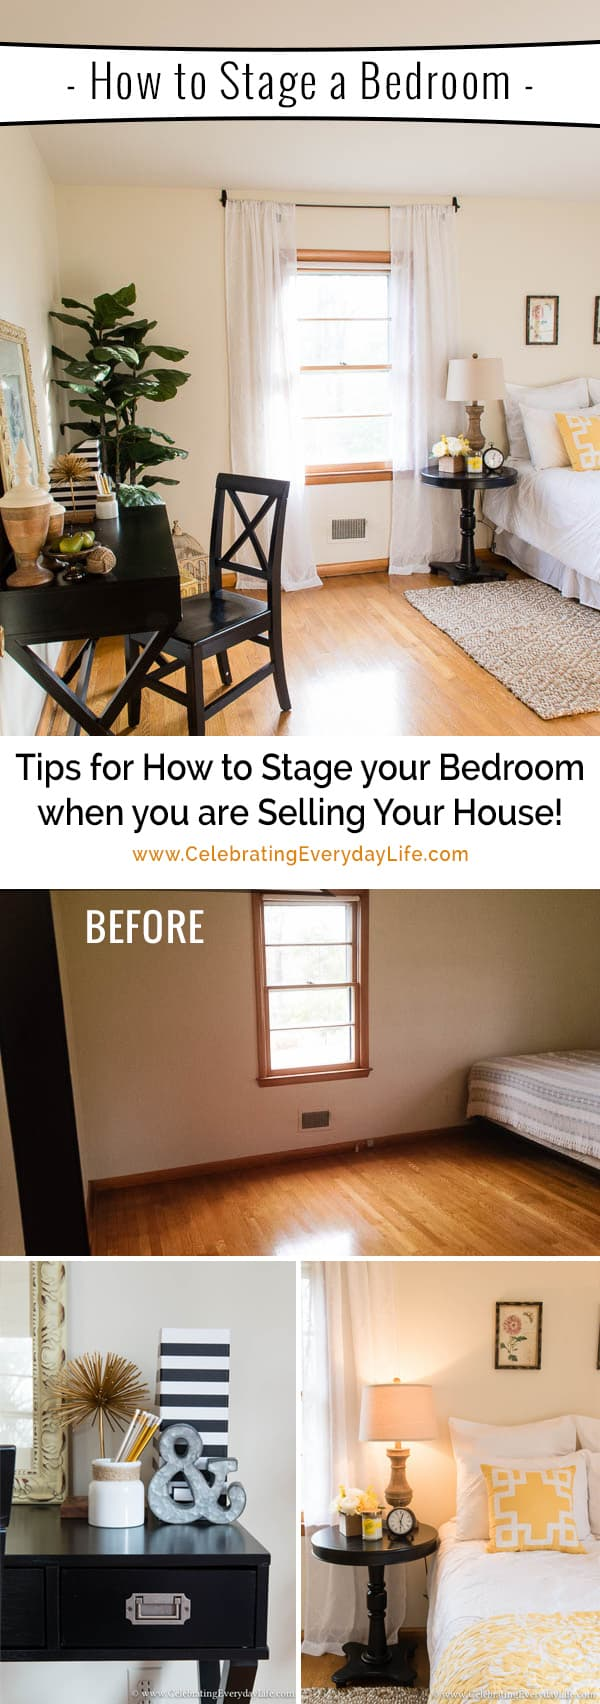 Home staging ideas, How to stage a bedroom, decorate a bedroom for sale, celebrating everyday life with jennifer carroll